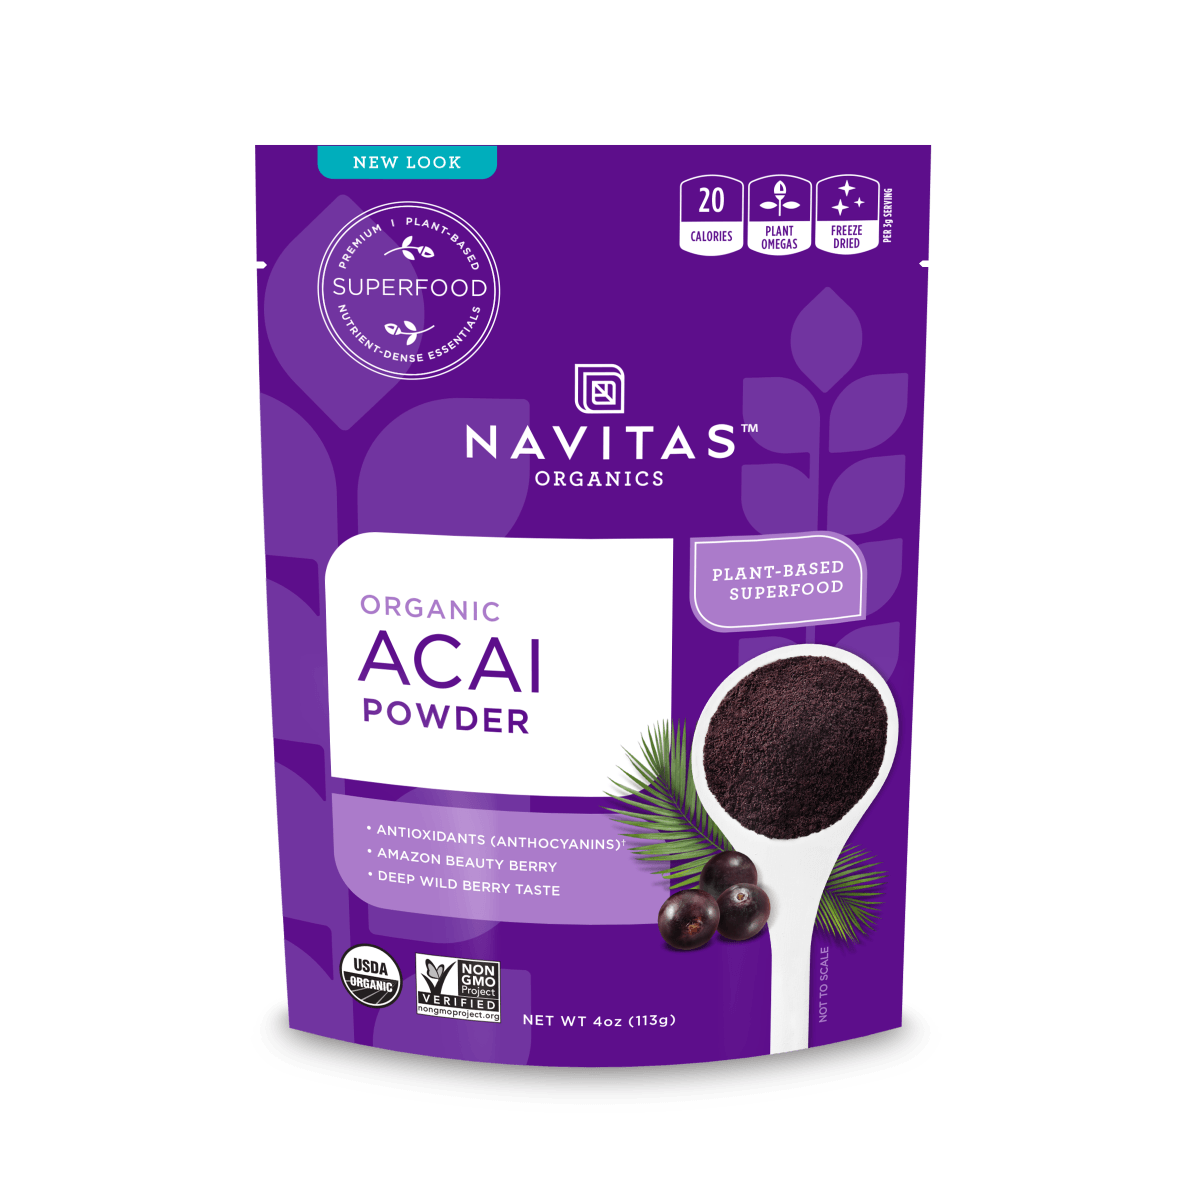 Supplements - Navitas Organics - Acai Powder, 113g